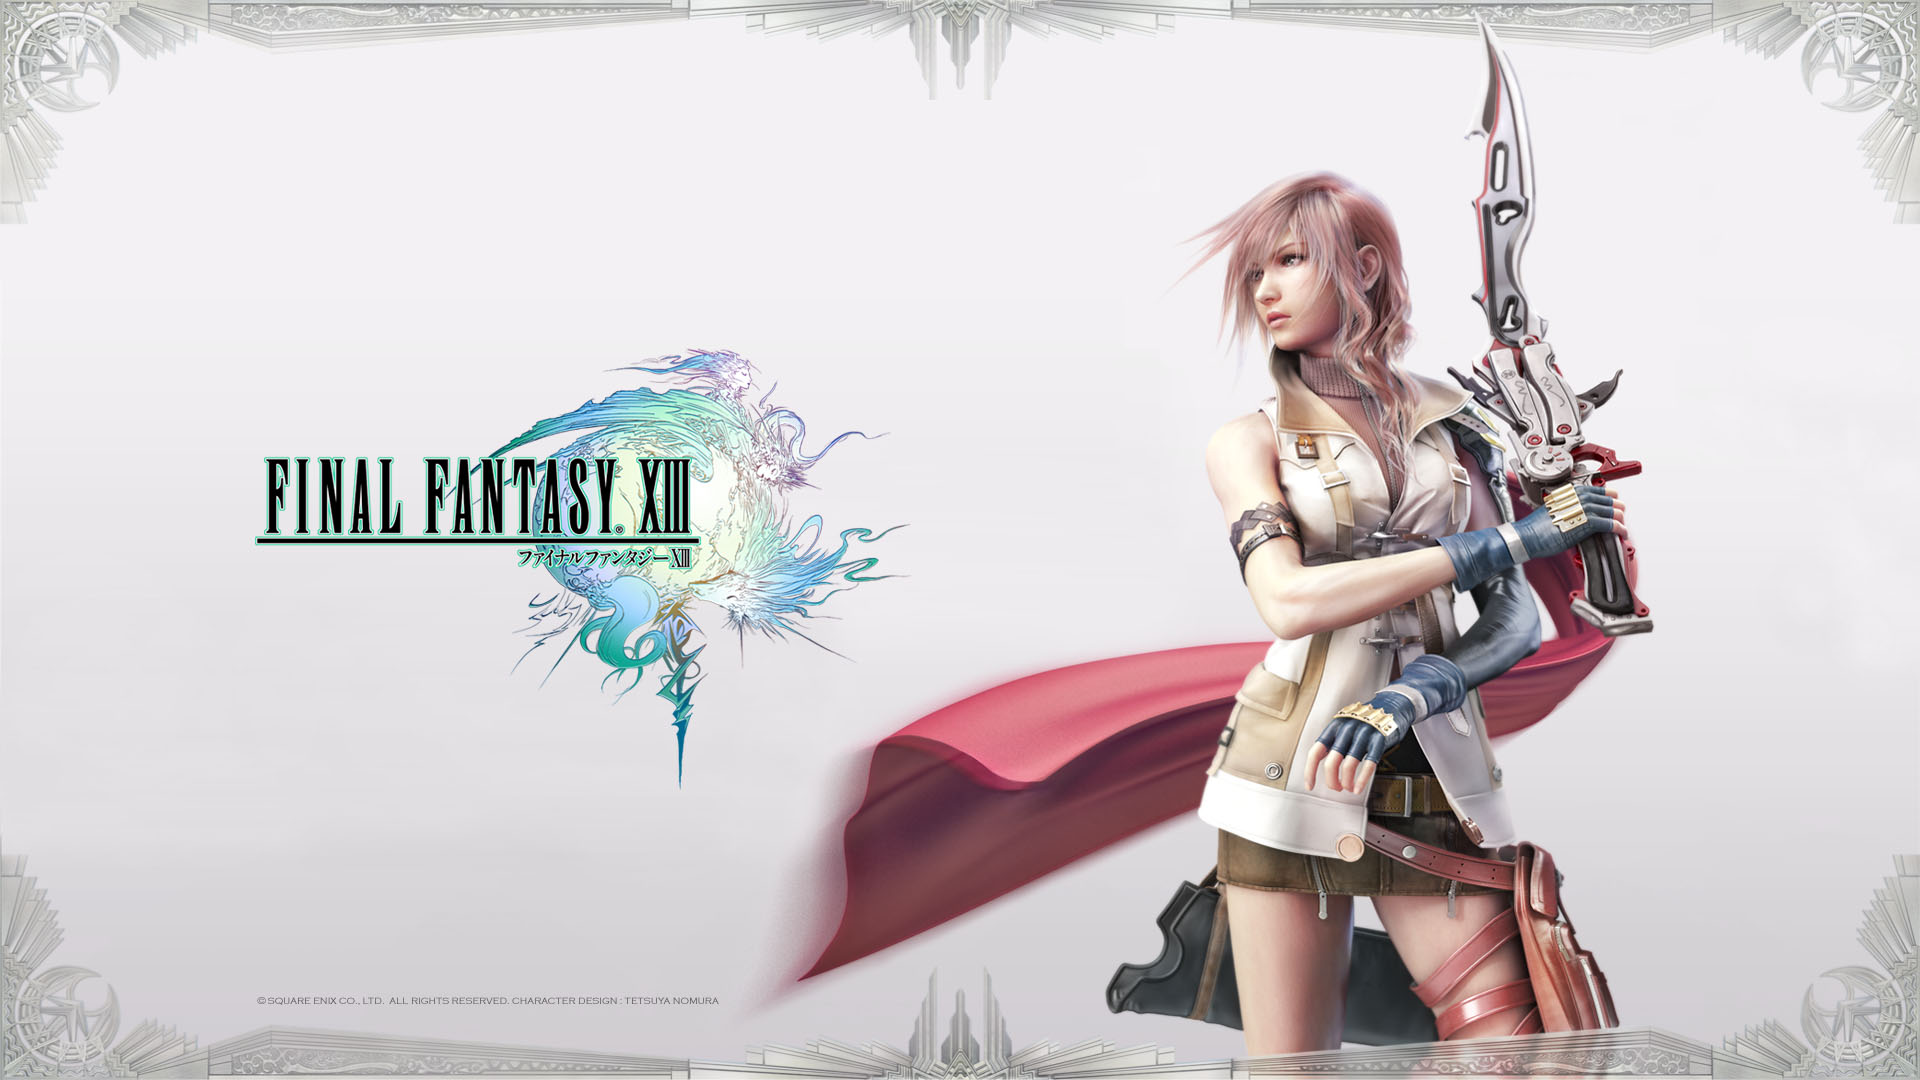 Final Fantasy XIII Lightning Posing Wallpaper Wallpapers 1920x1080